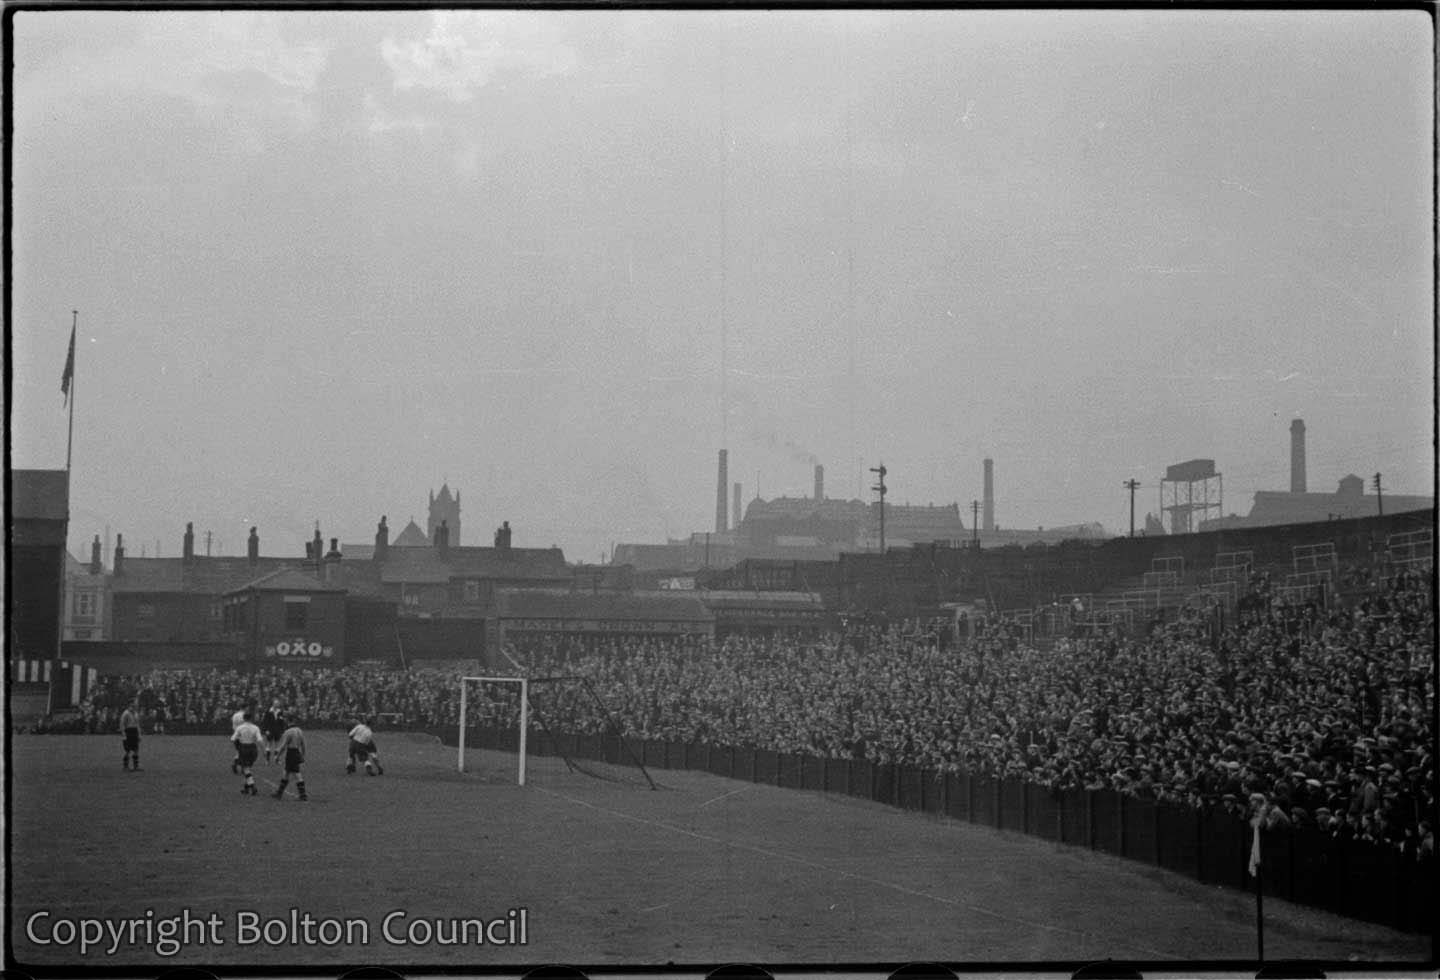 Bolton Wanderers reserve team play at Burnden Park